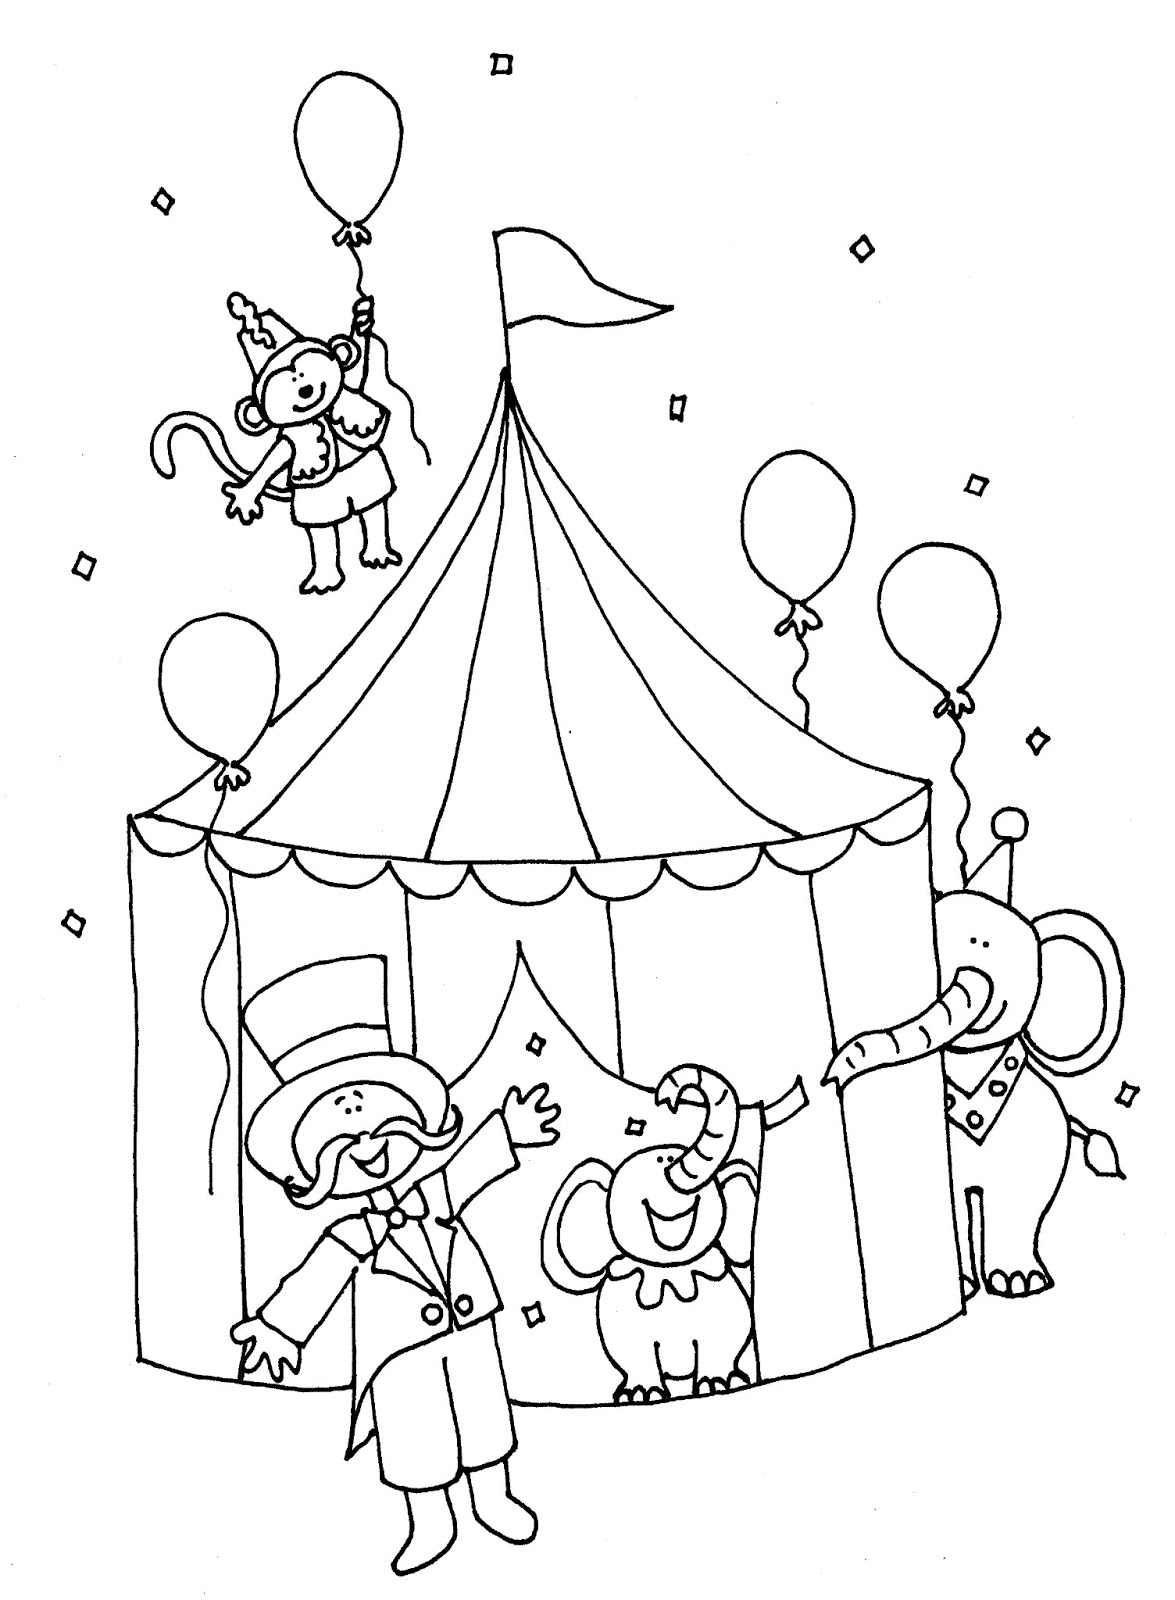 Circus coloring #13, Download drawings